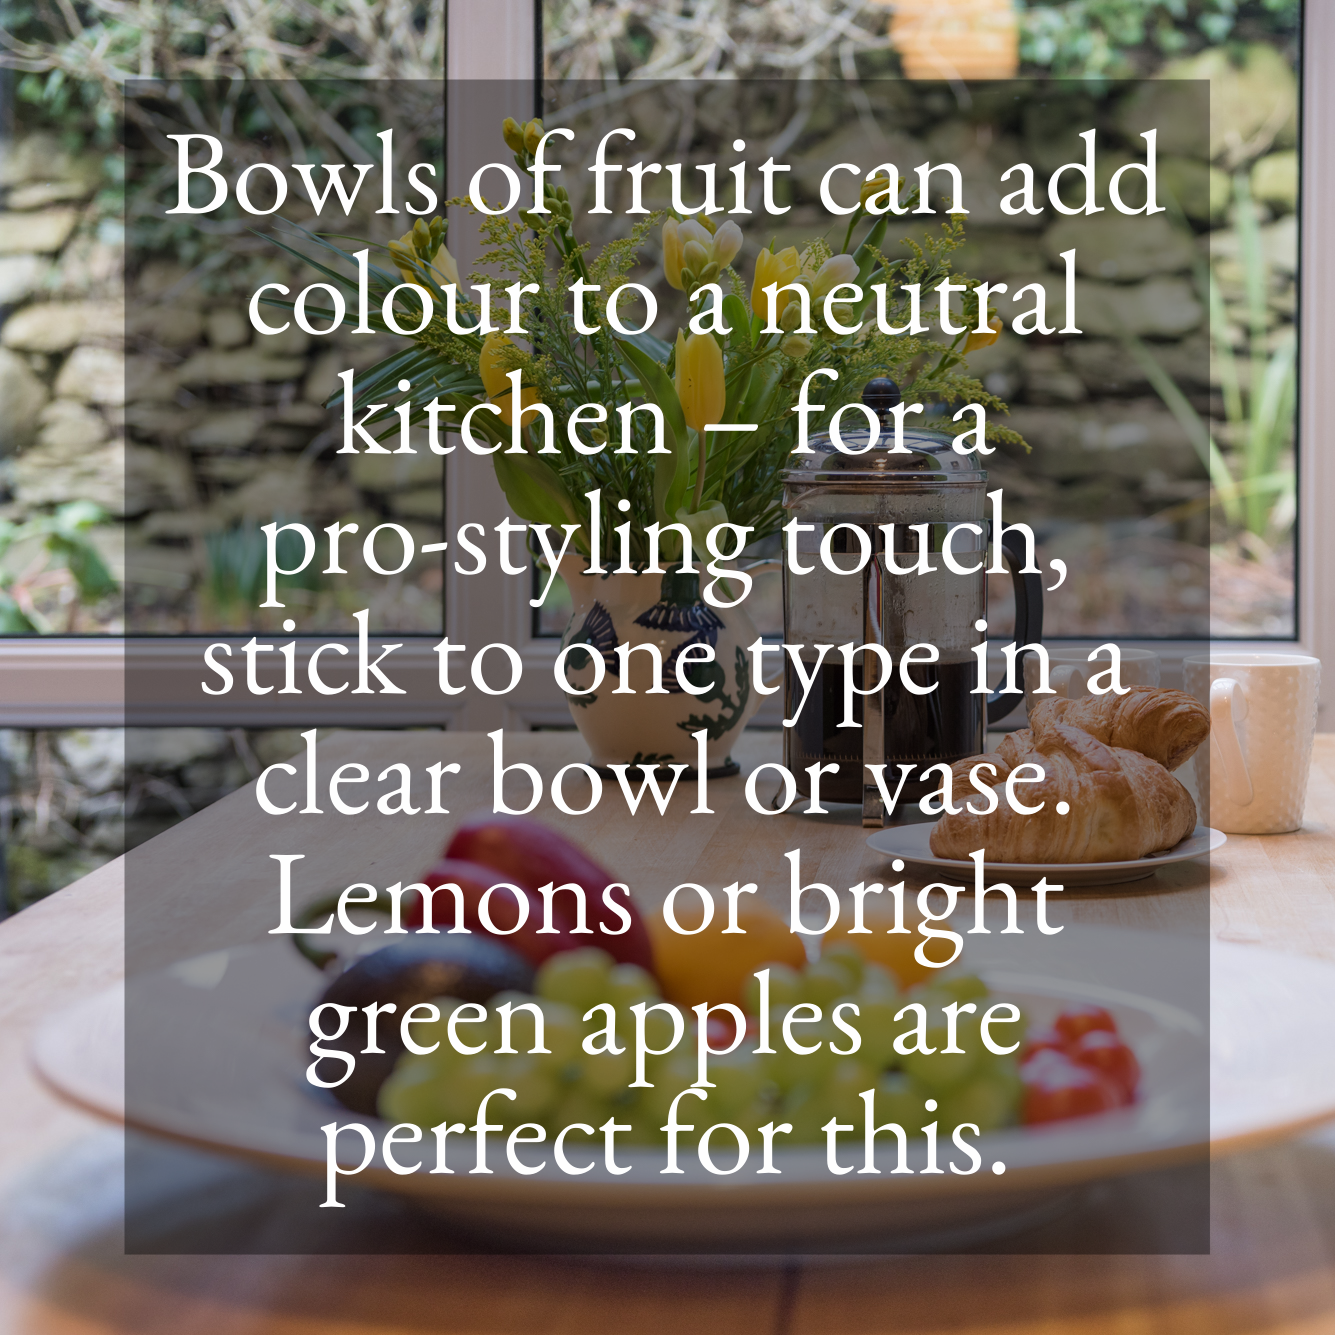 tg5-bowls-of-fruit-can-add-colour